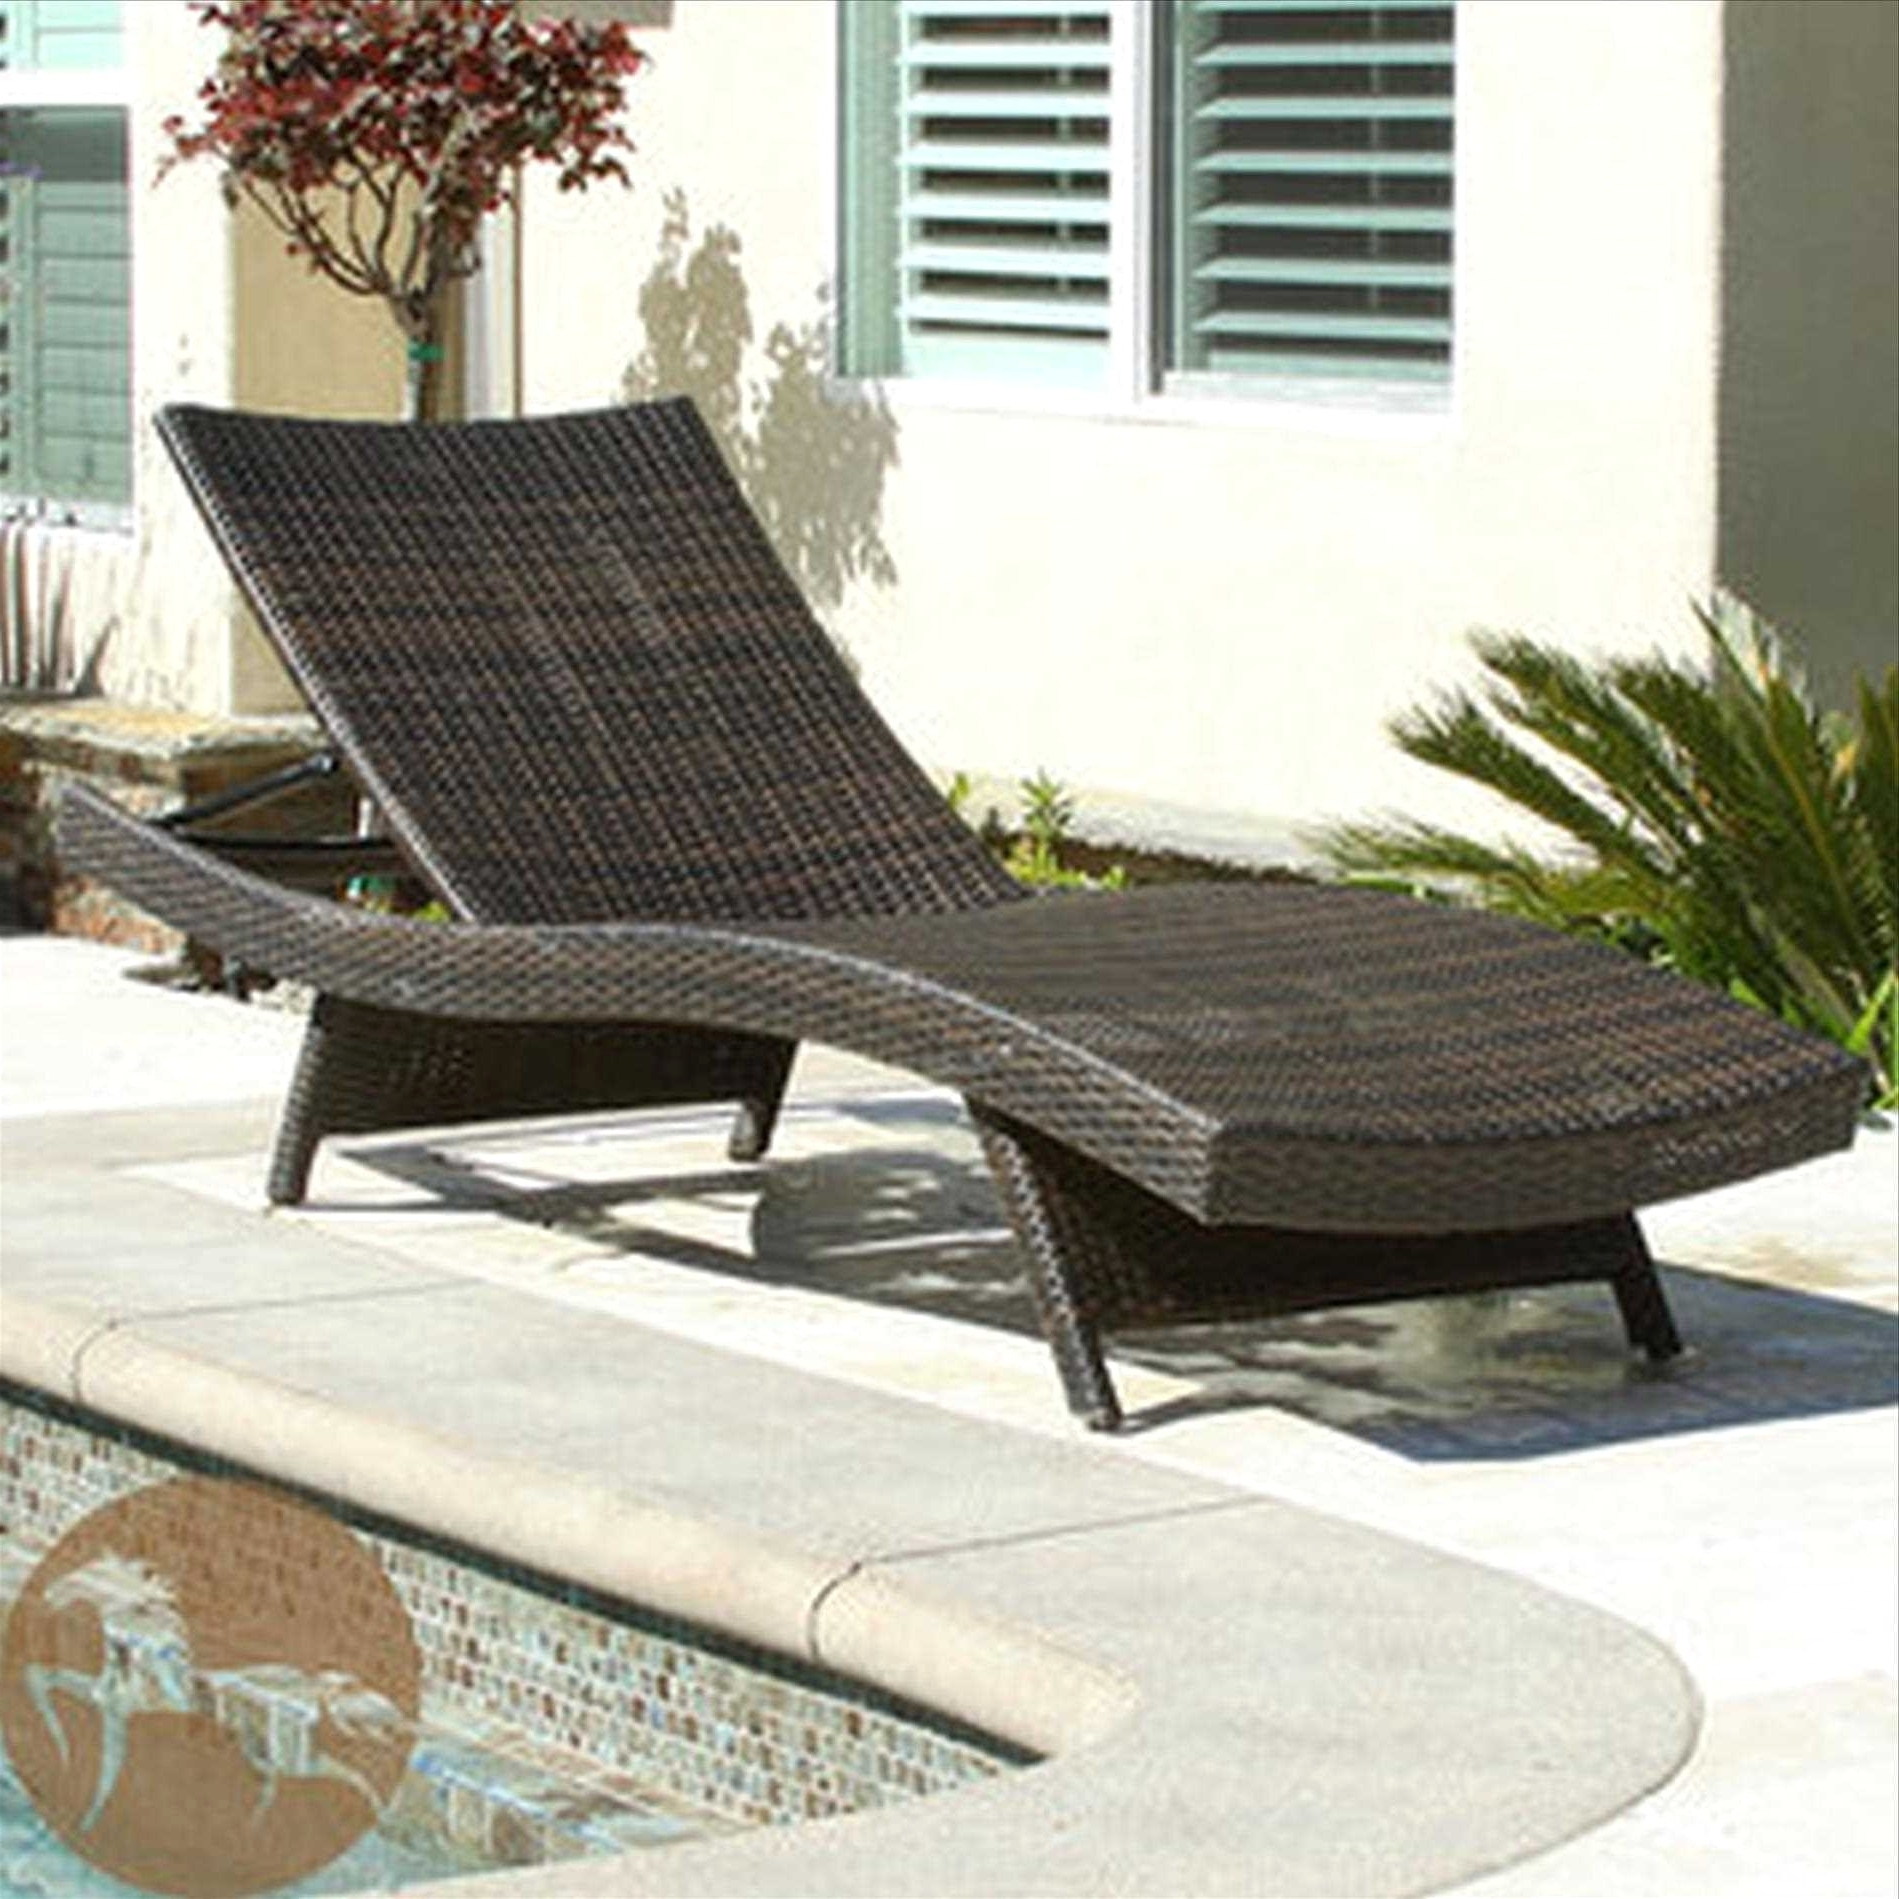 Favorite Sears Chaise Lounge Chairs Patio Furniture • Lounge Chairs Ideas With Chaise Lounge Chairs For Patio (View 14 of 15)